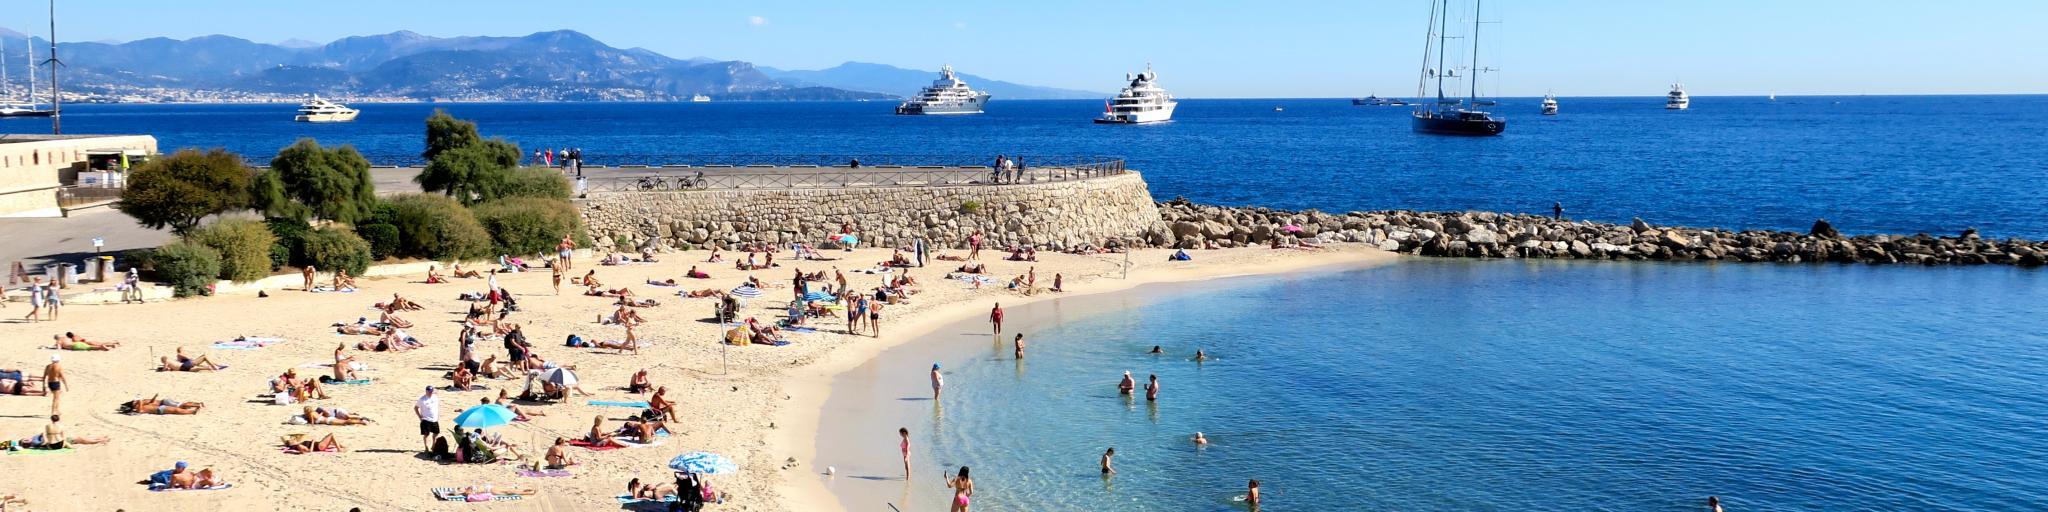 Holiday makers relax on a sandy beach in Antibes, France, on a sunny day